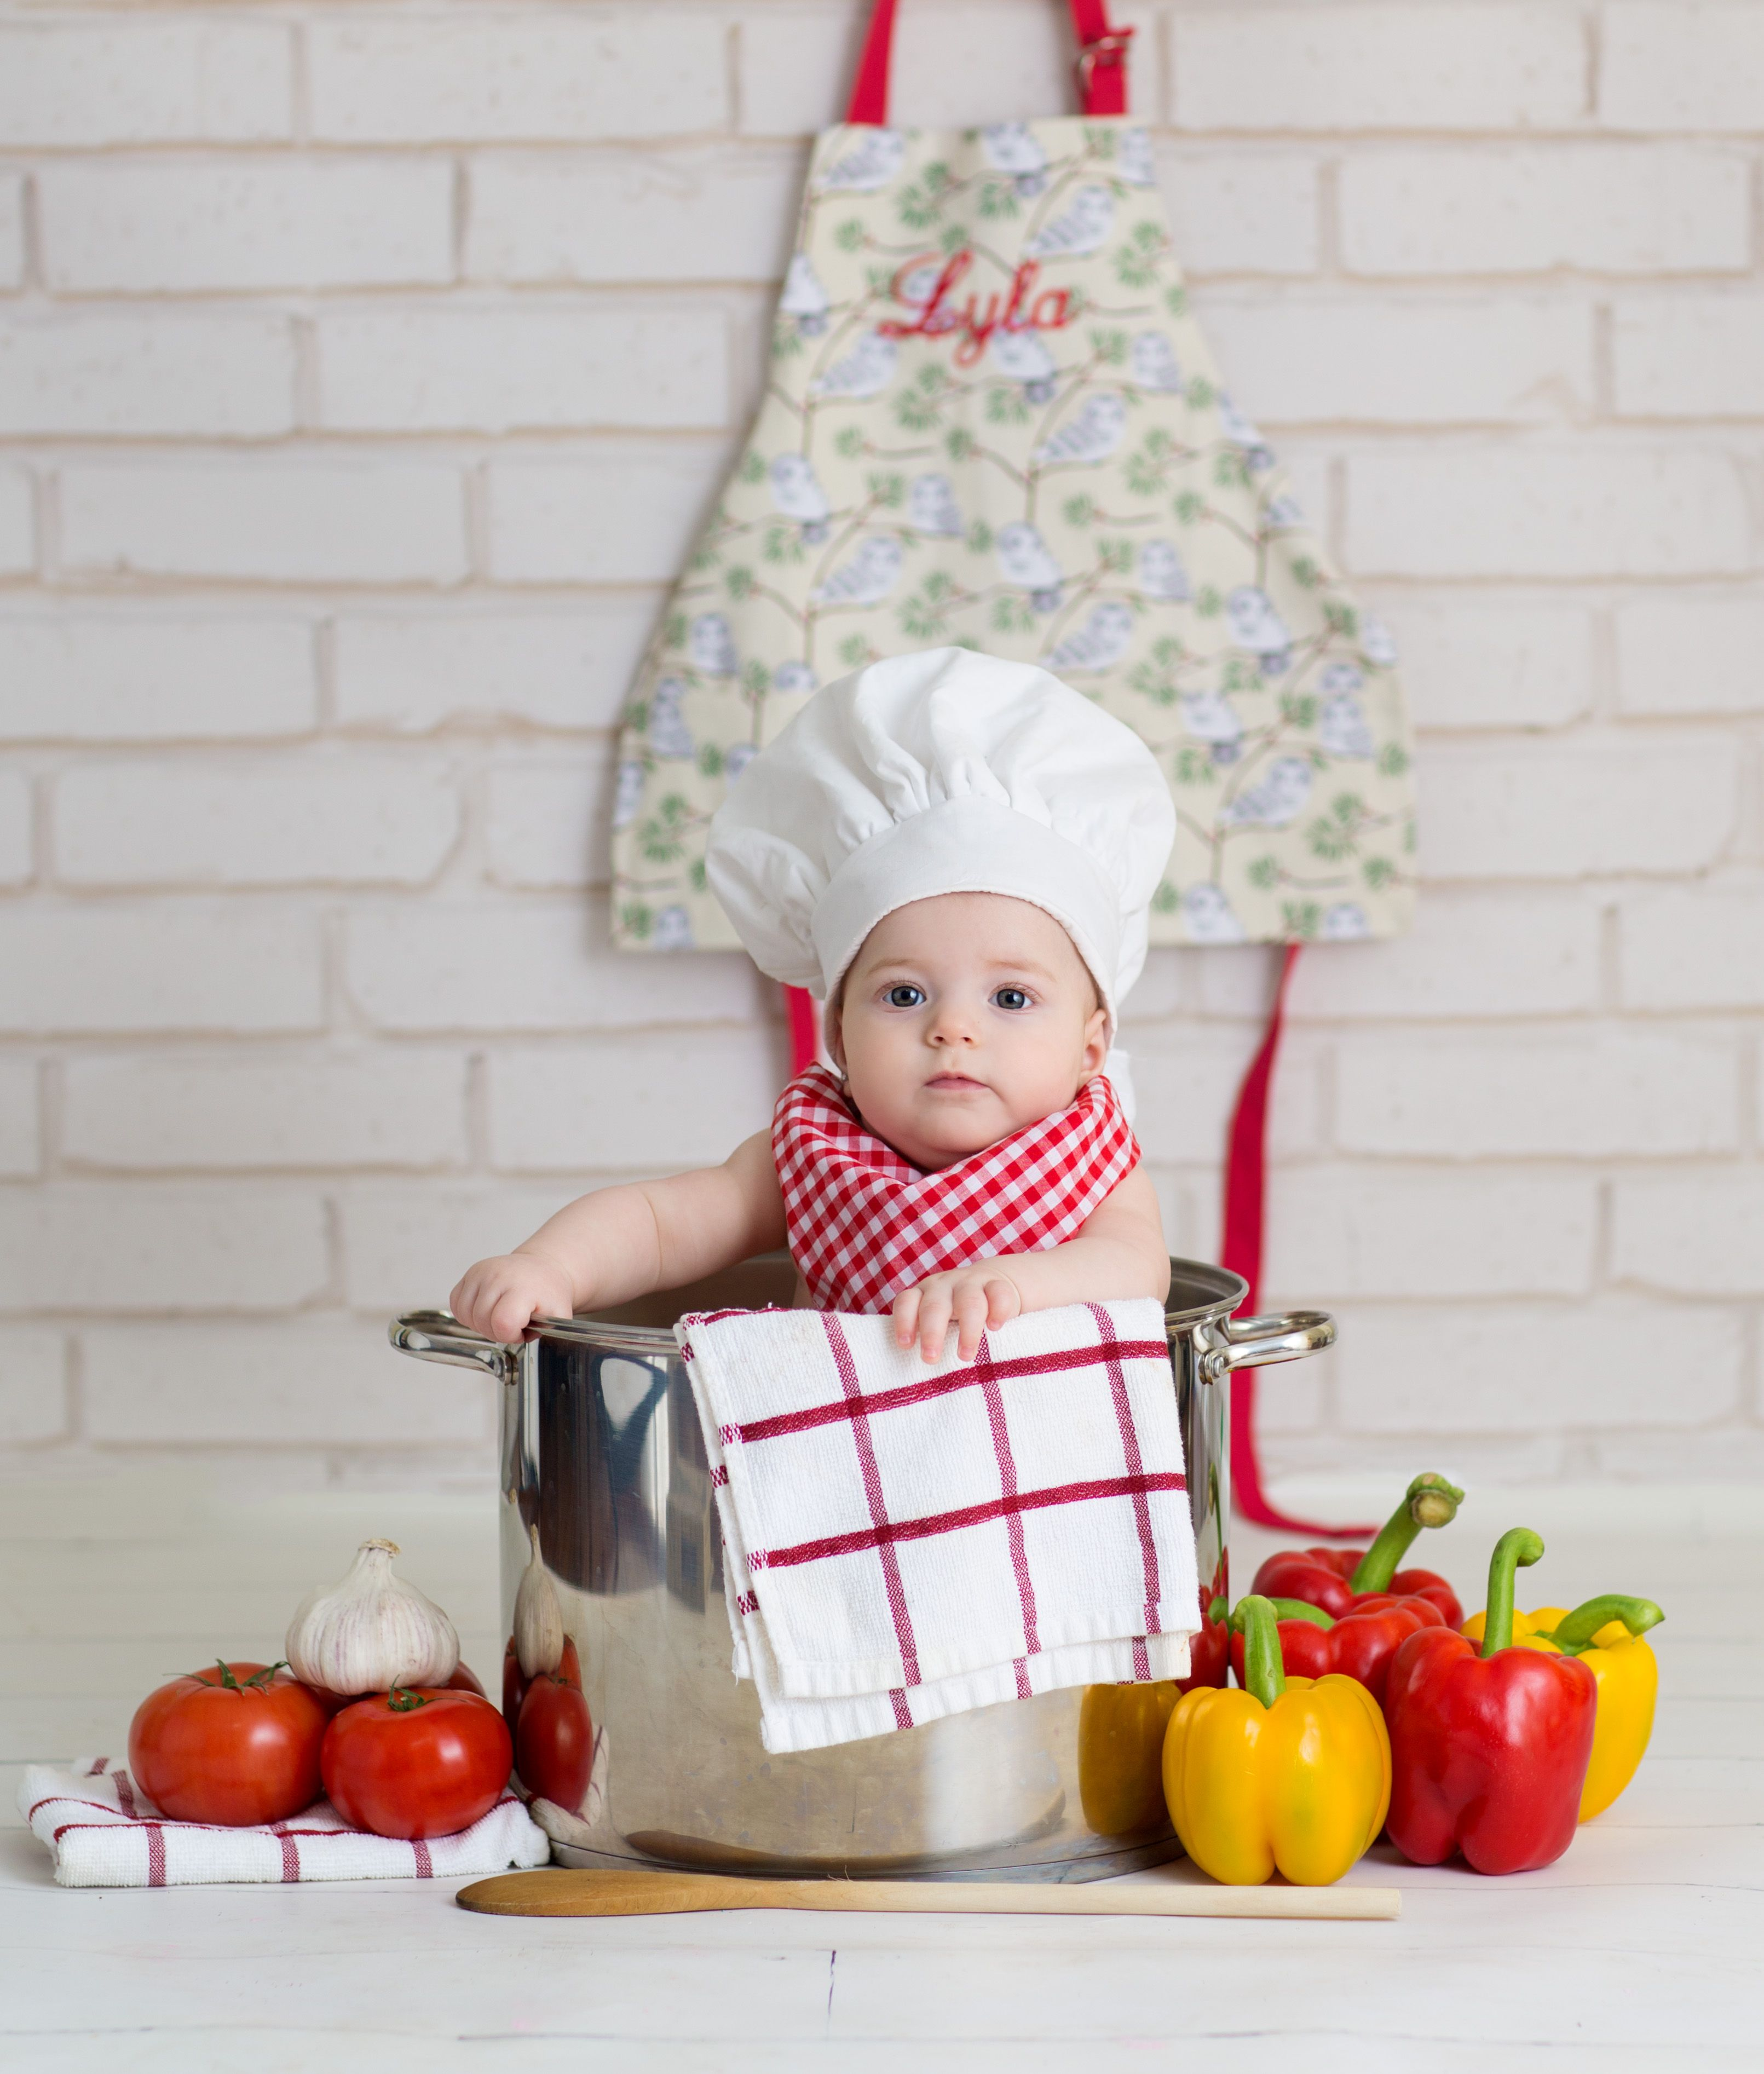 baby chef baby cook baby photography fun pinterest baby baby ideen und foto kinder. Black Bedroom Furniture Sets. Home Design Ideas